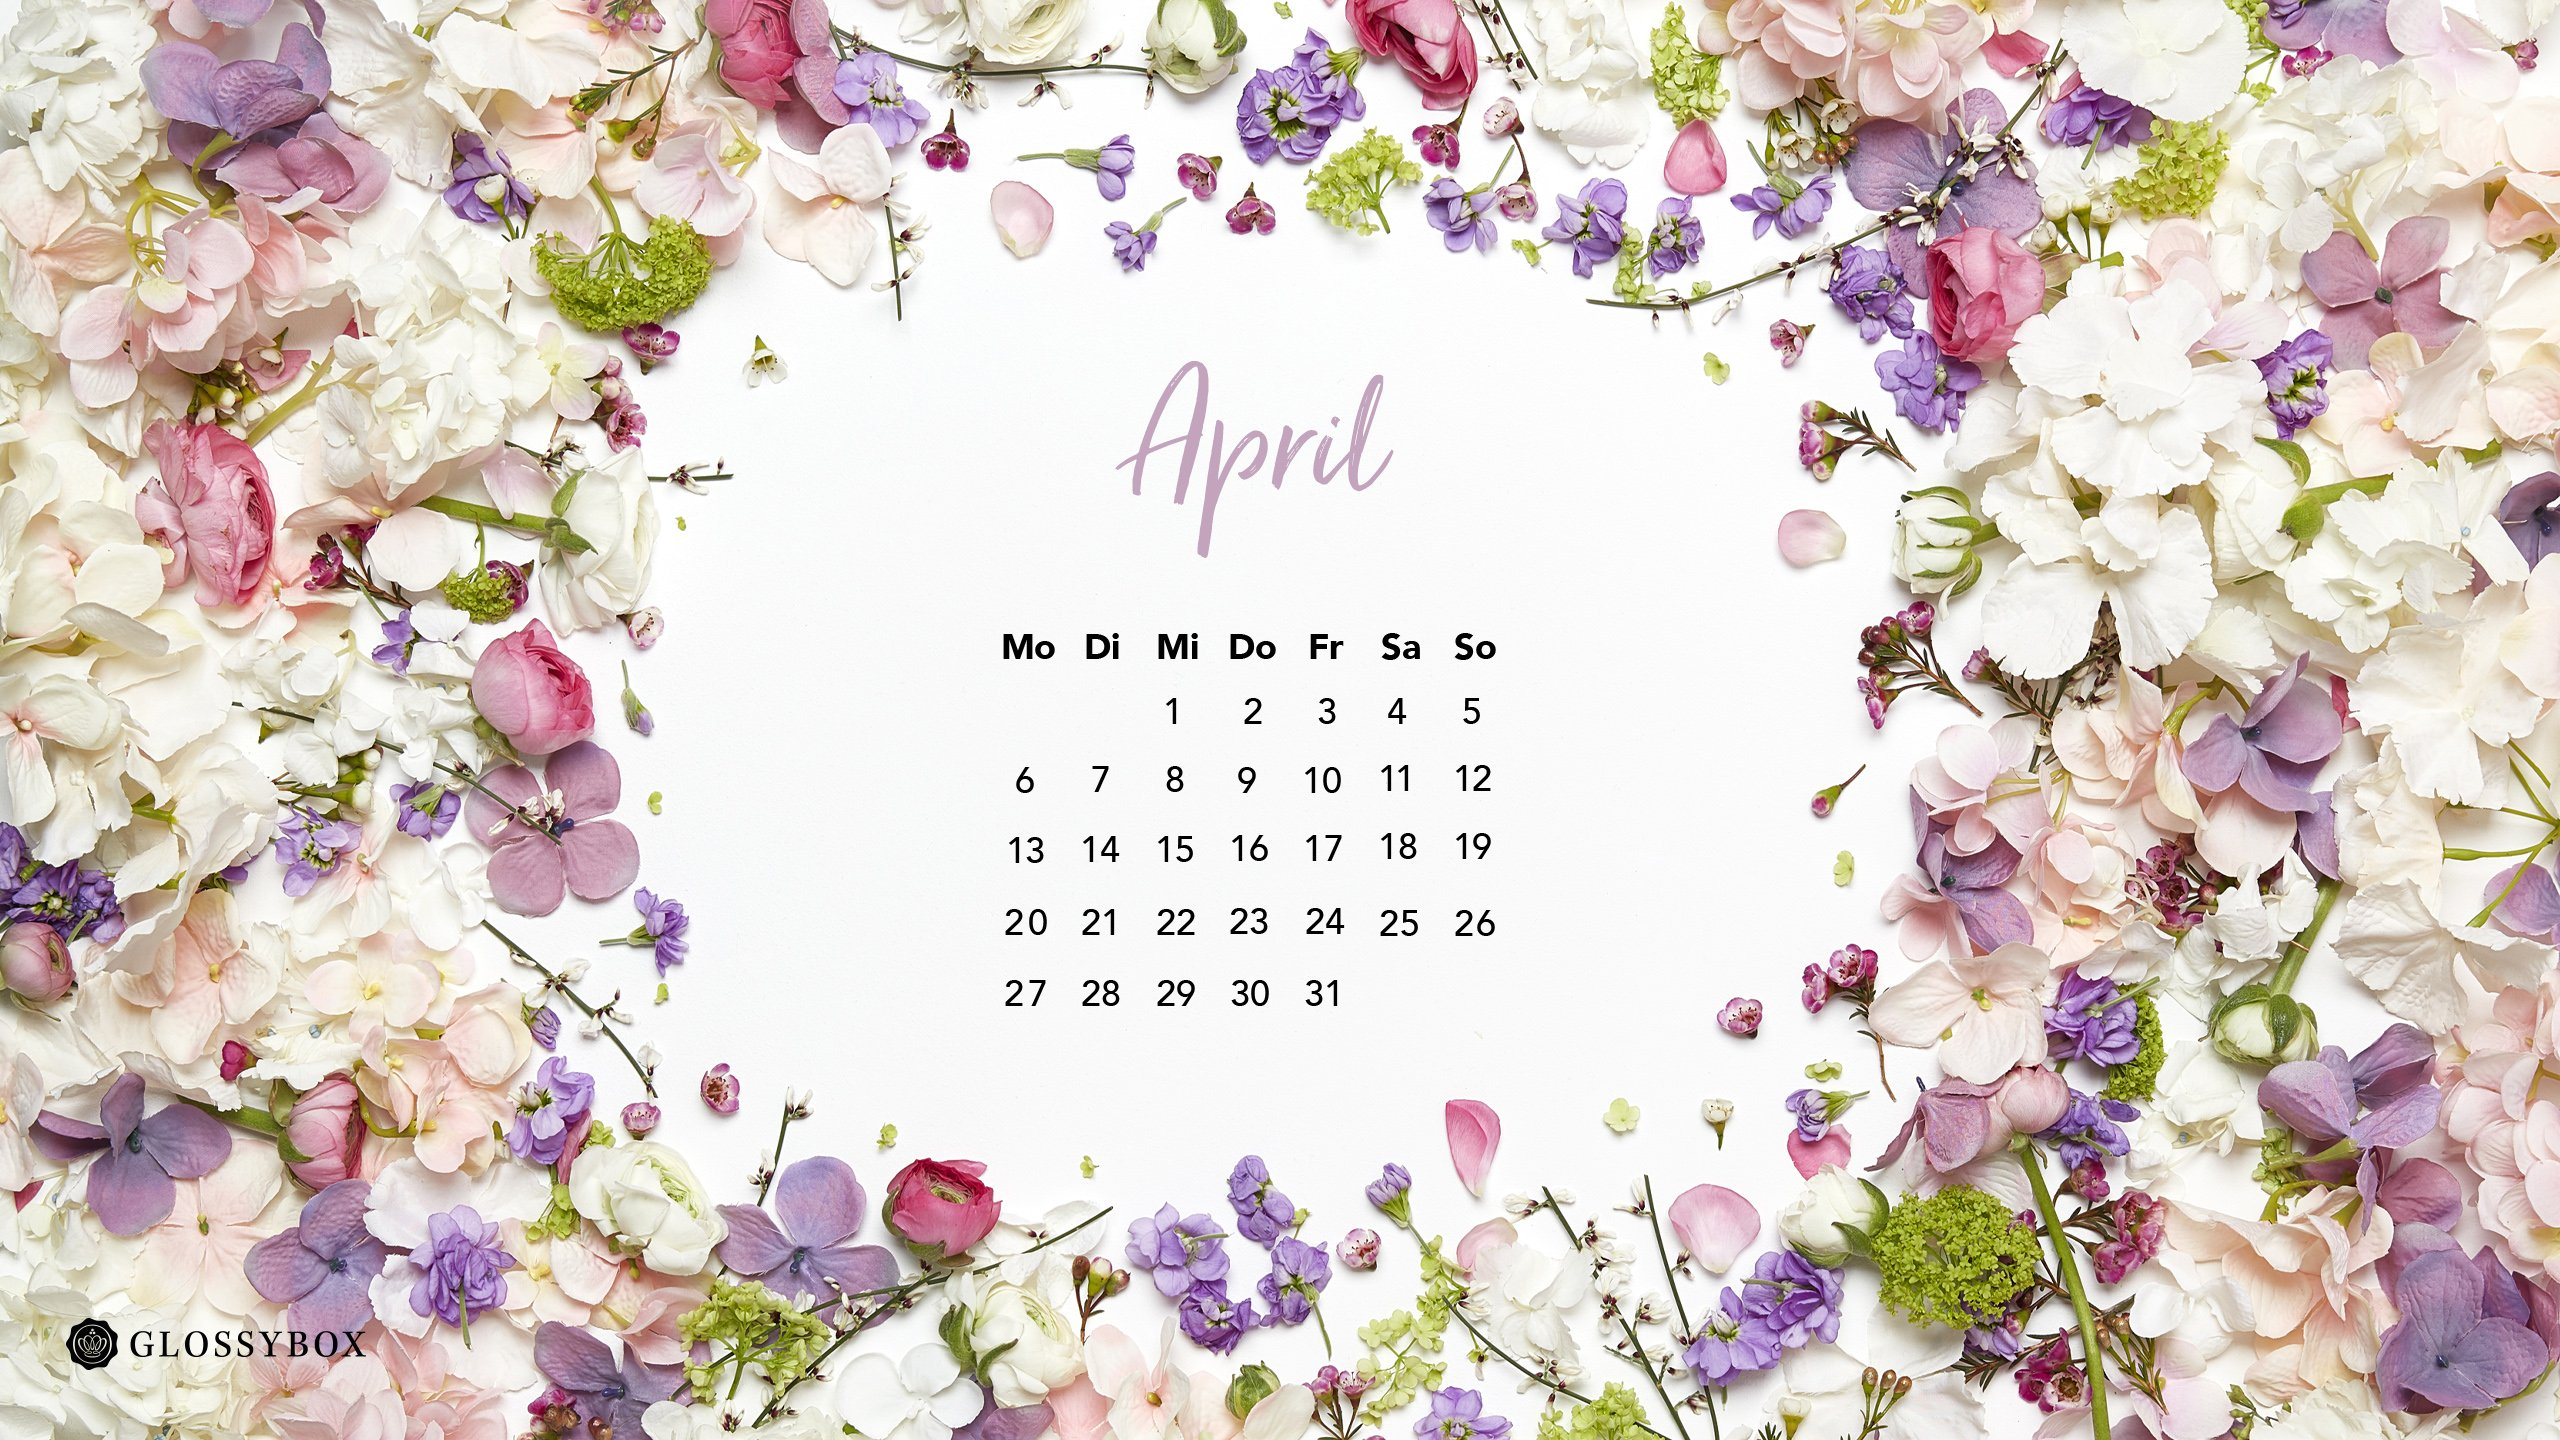 glossybox-april-blossom-wallpaper